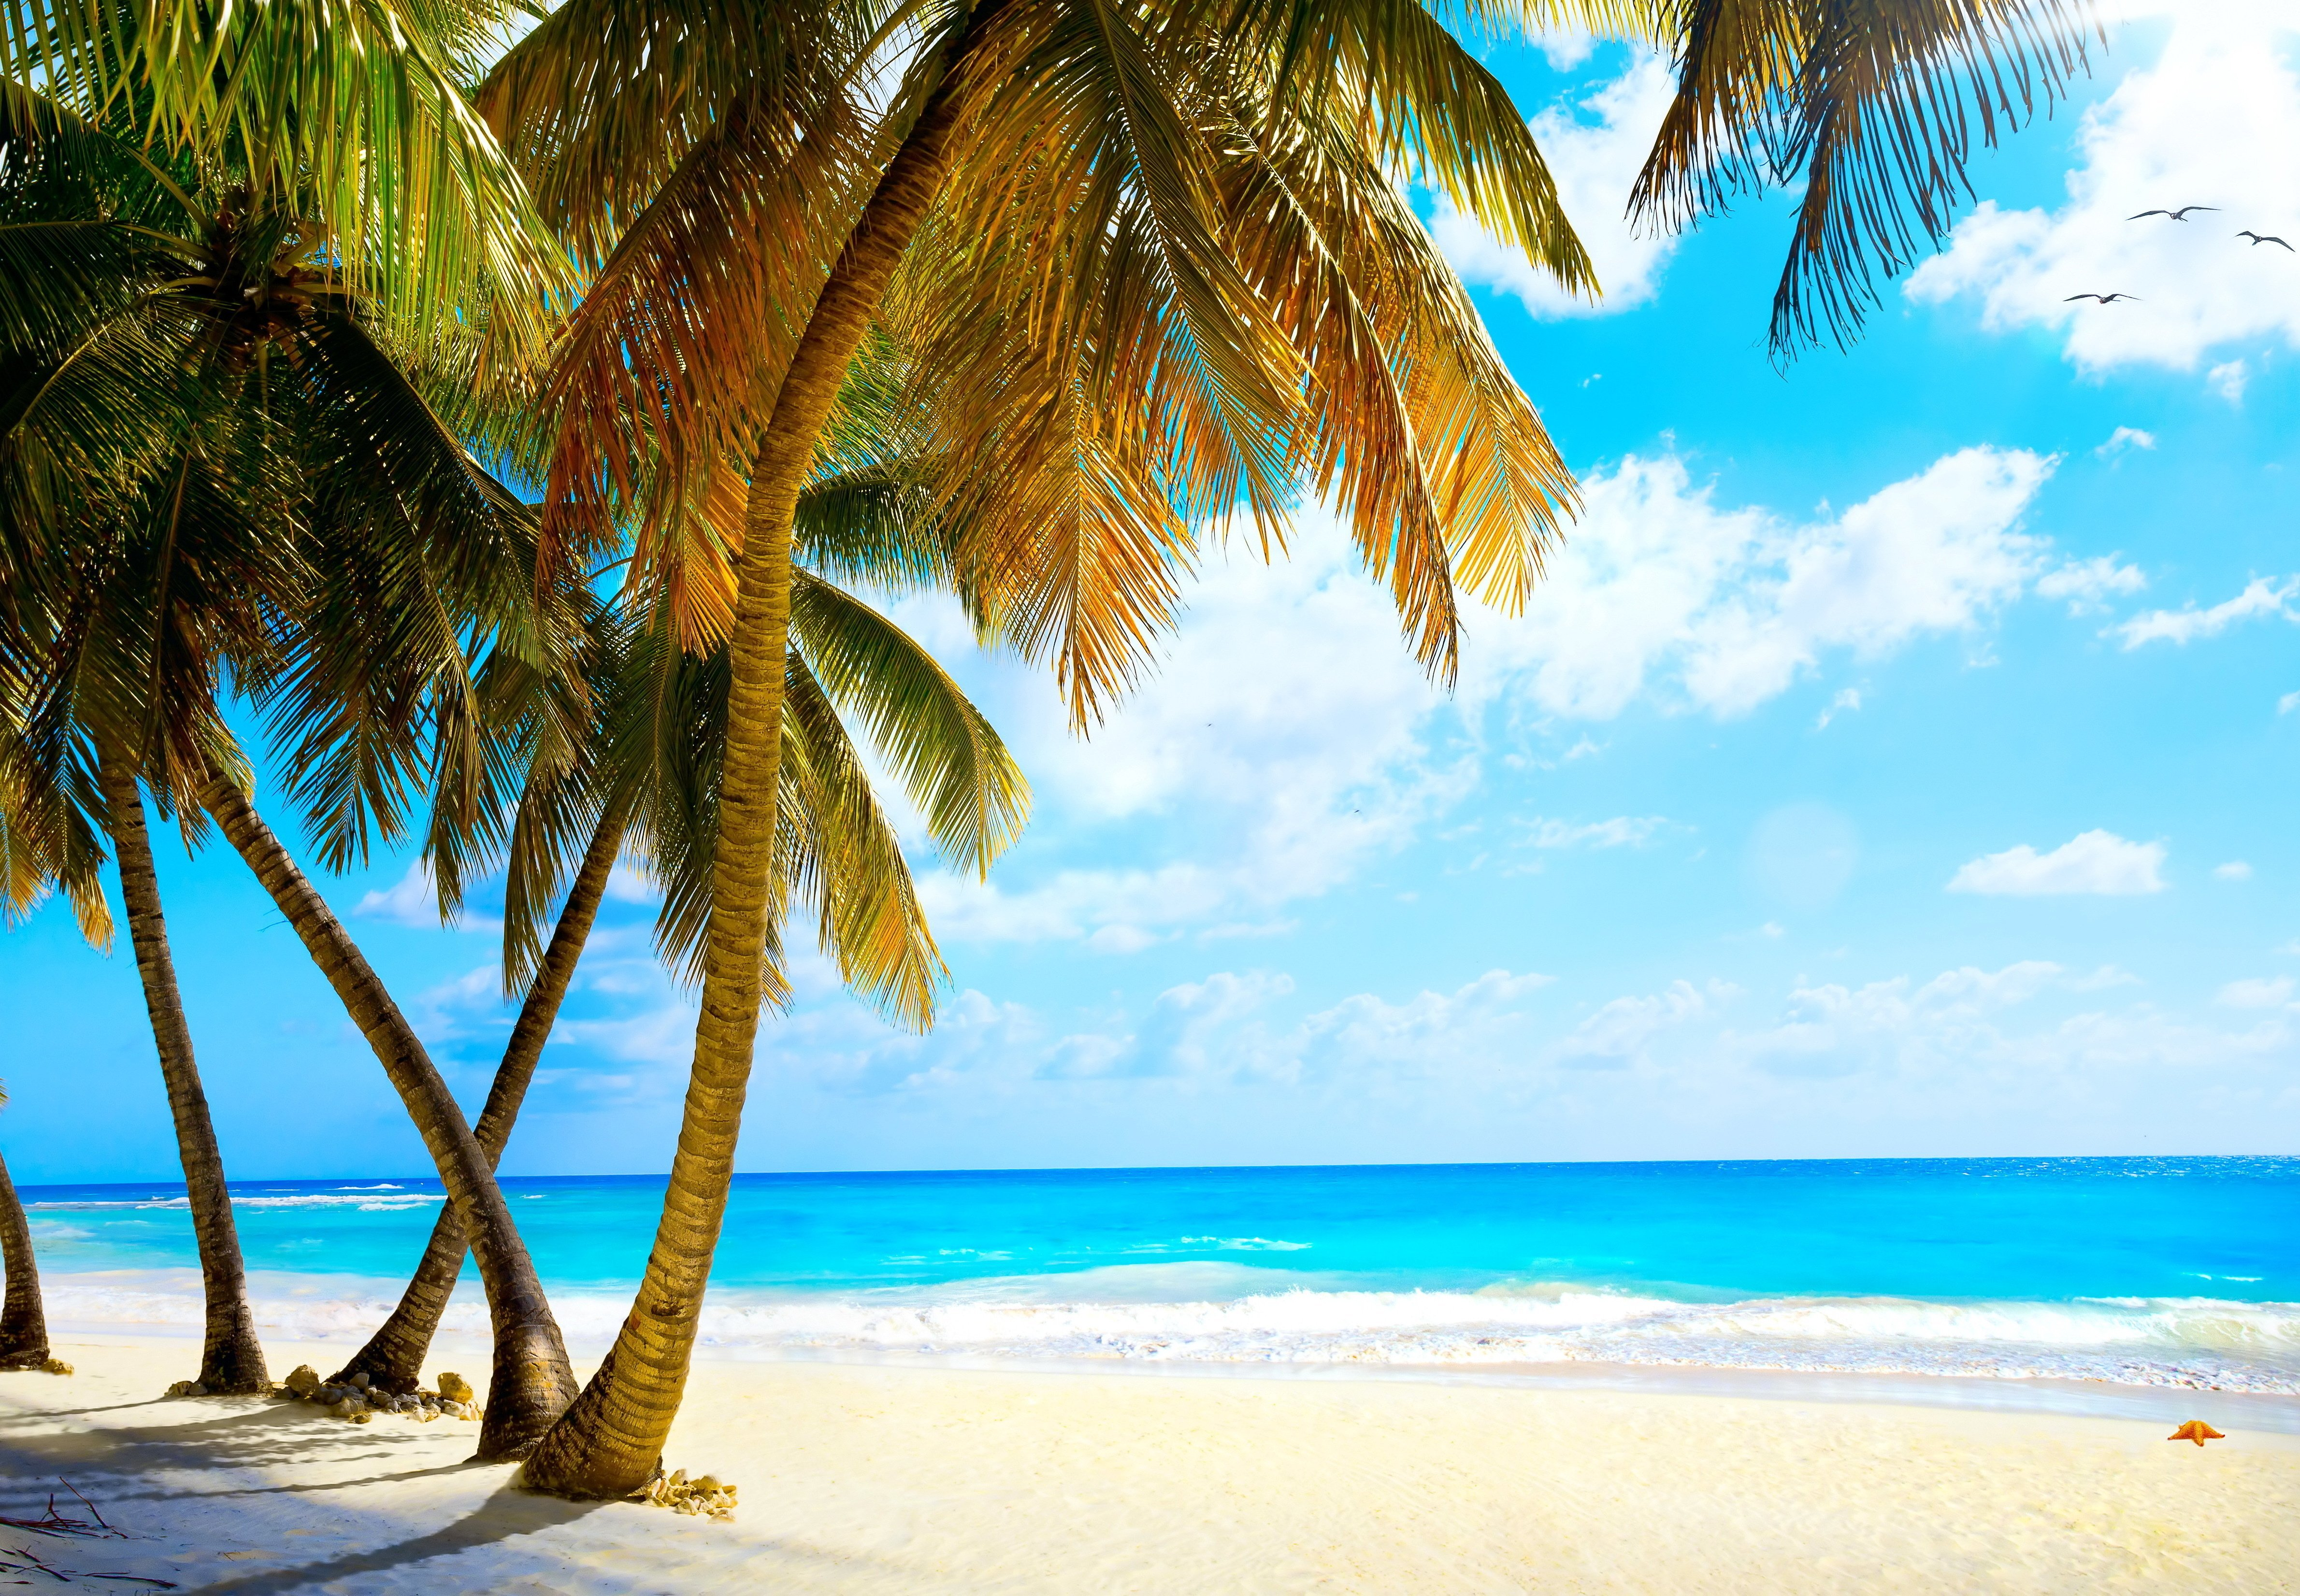 palms vacation tropical sea paradise beach ocean wallpaper background 4760x3304